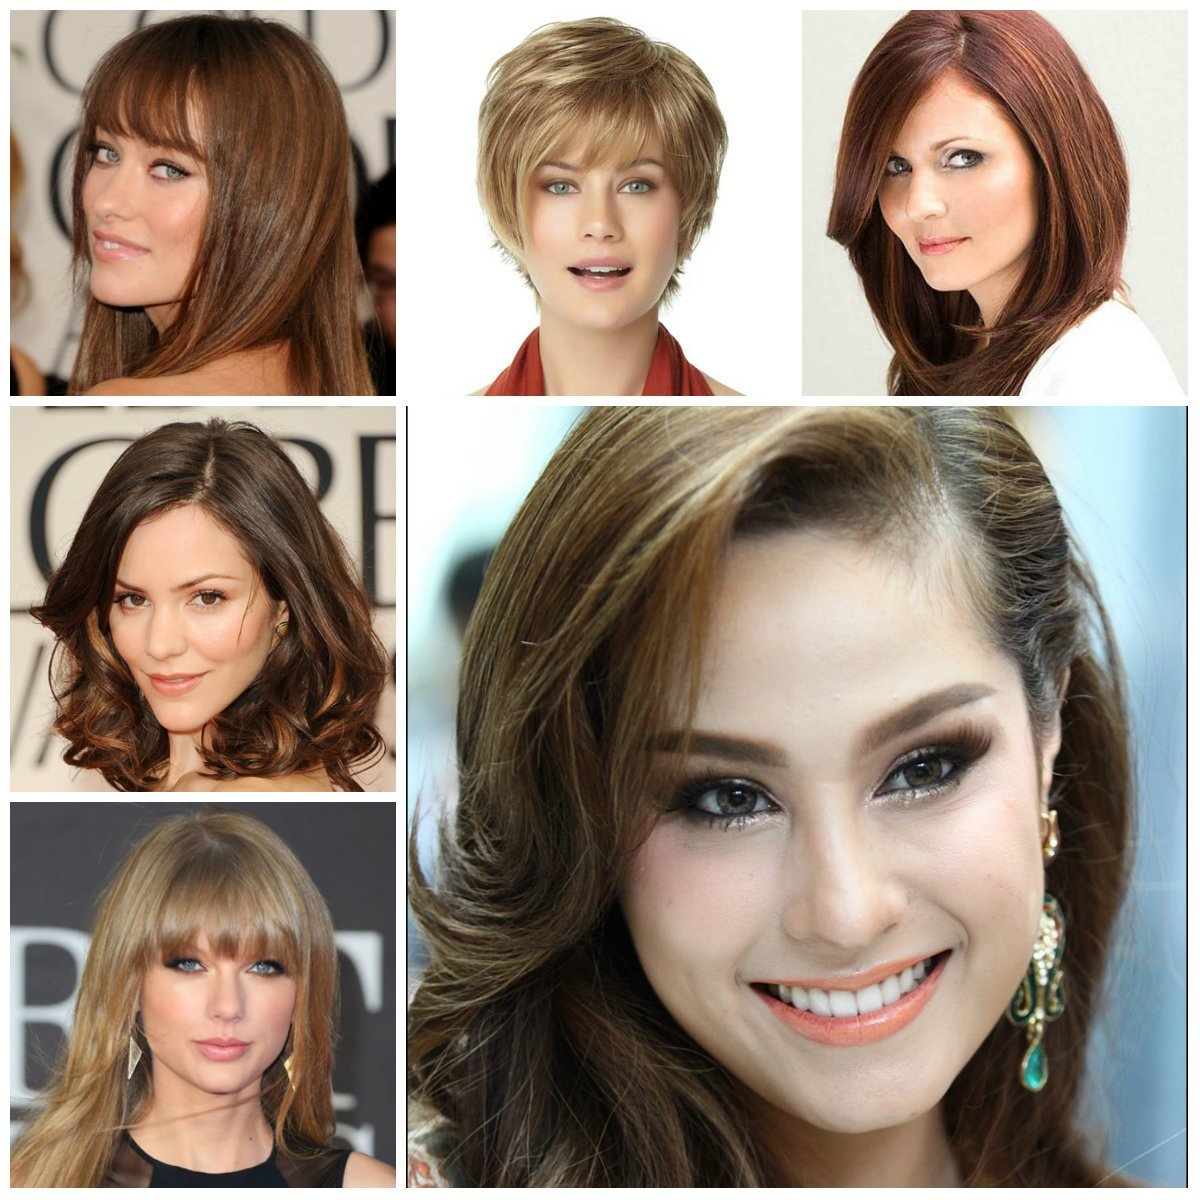 The Best Hairstyles According To Face Shape That Makes Everyone Pictures